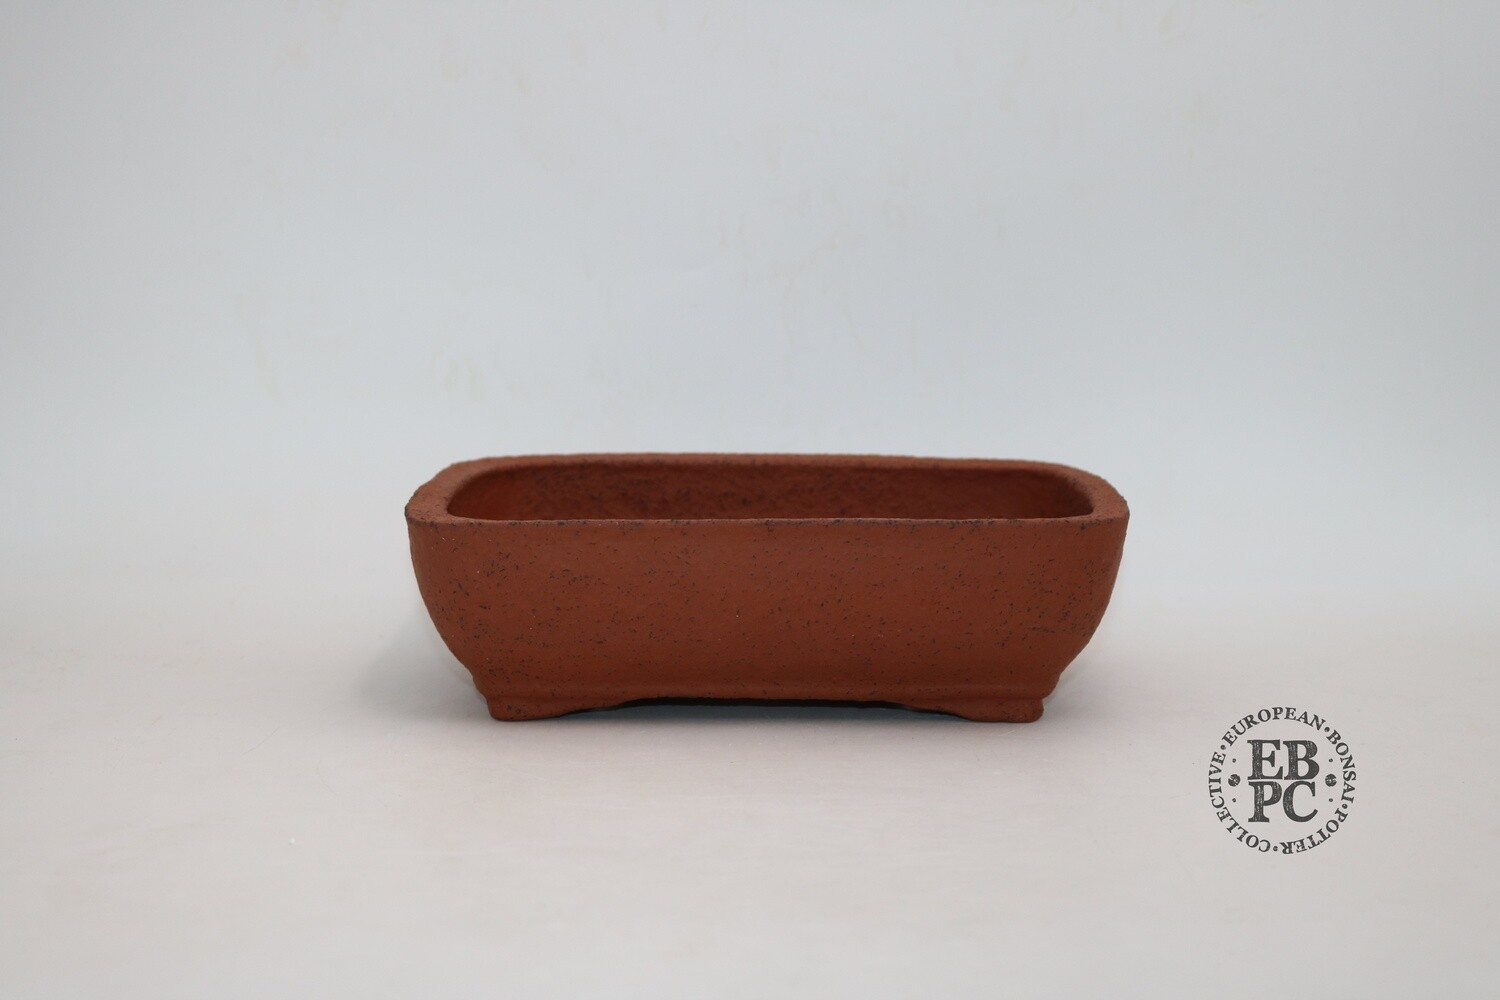 SOLD - Zey Ceramics - 24cm; Unglazed; Soft-Cornered Rectangle; Groggy Red/Brown Clay; Recessed feet; Basal Band